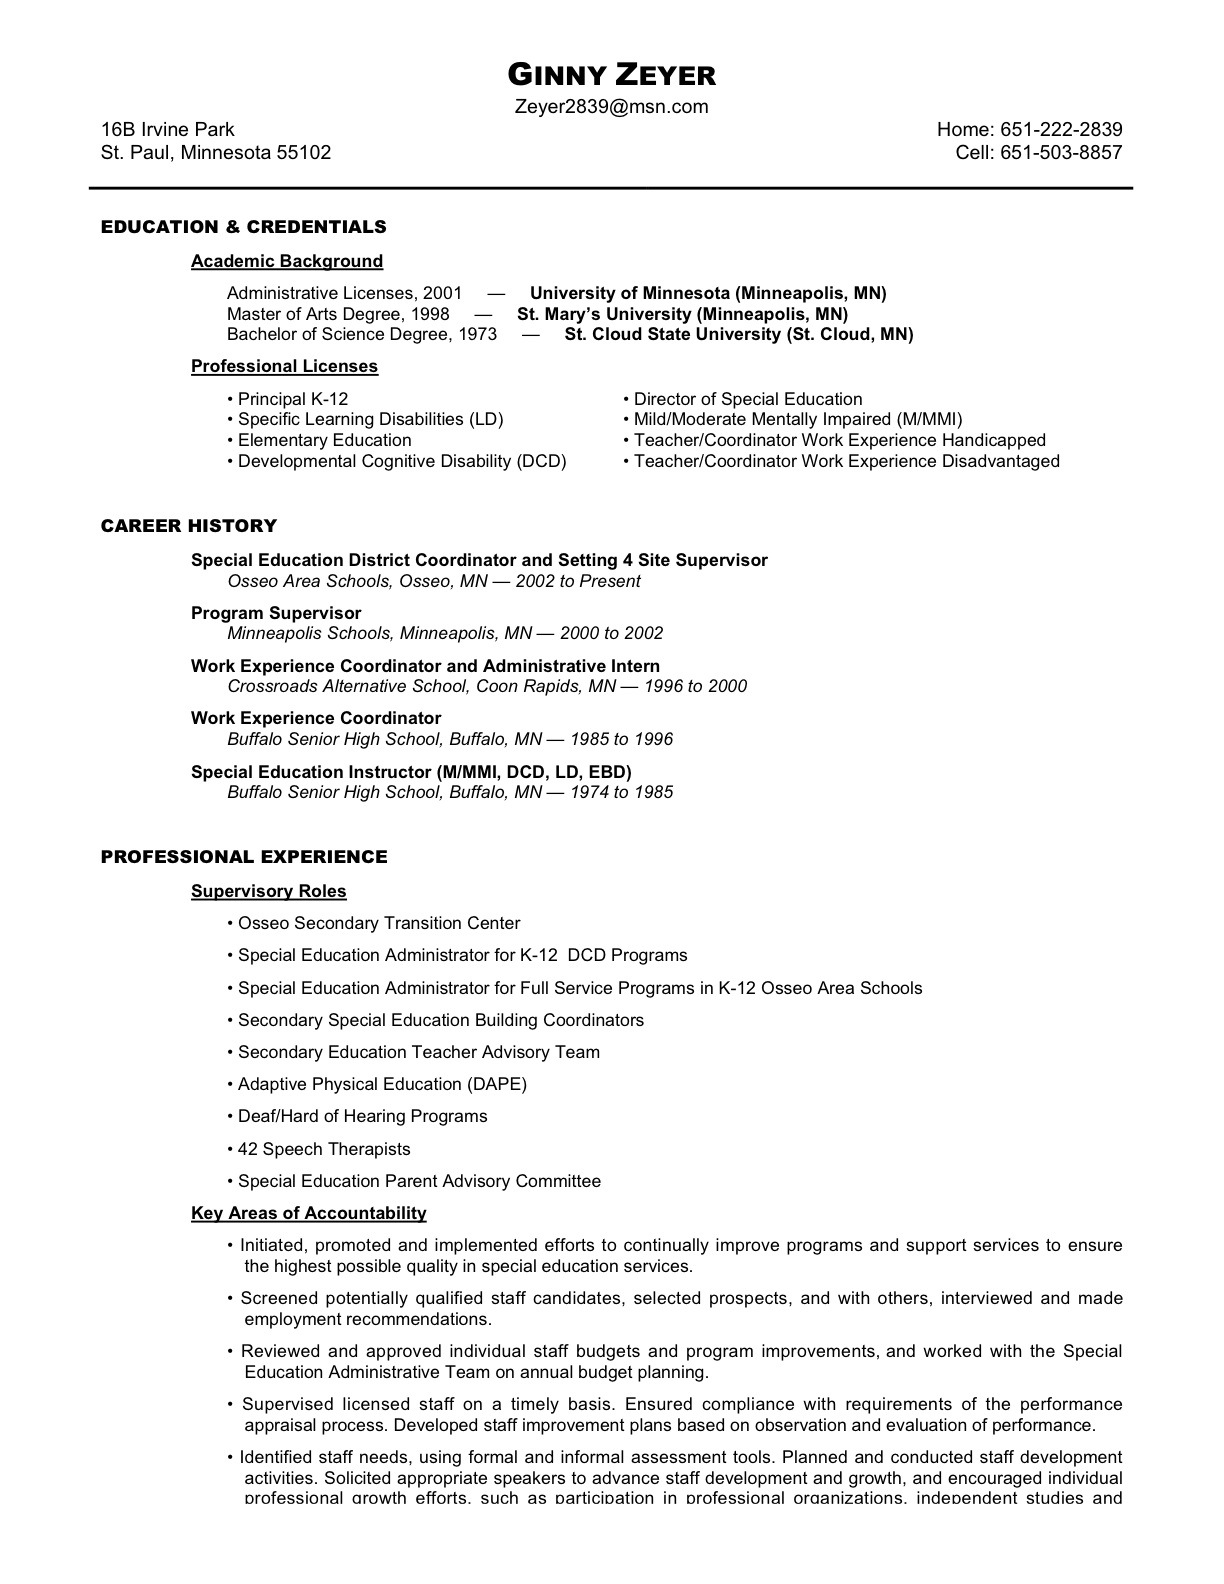 qualifications amp resume ginny zeyer